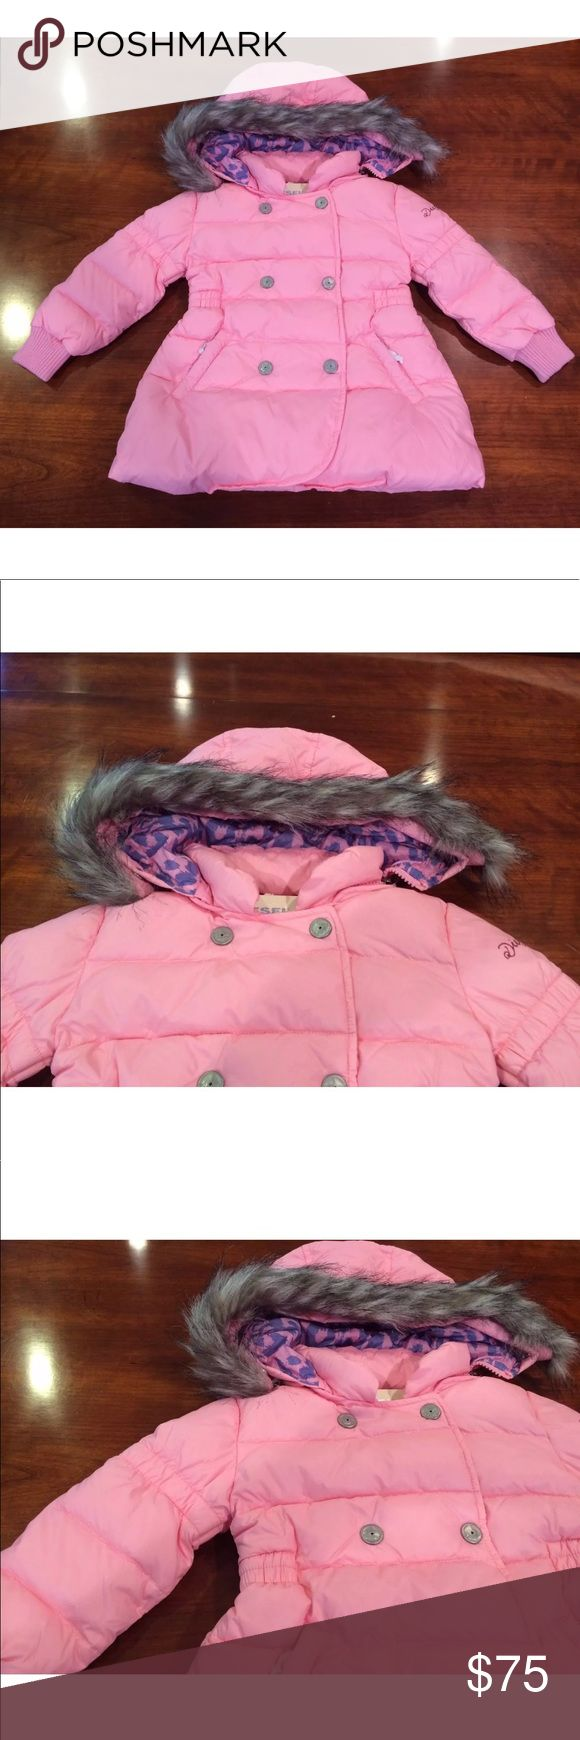 NWT***Pink DIESEL Coat Age 2 DIESEL- Gorgeous pink coat for a beautiful little princess. Size: Age 2 Hood is removable and fur is also removable. Diesel Jackets & Coats Puffers